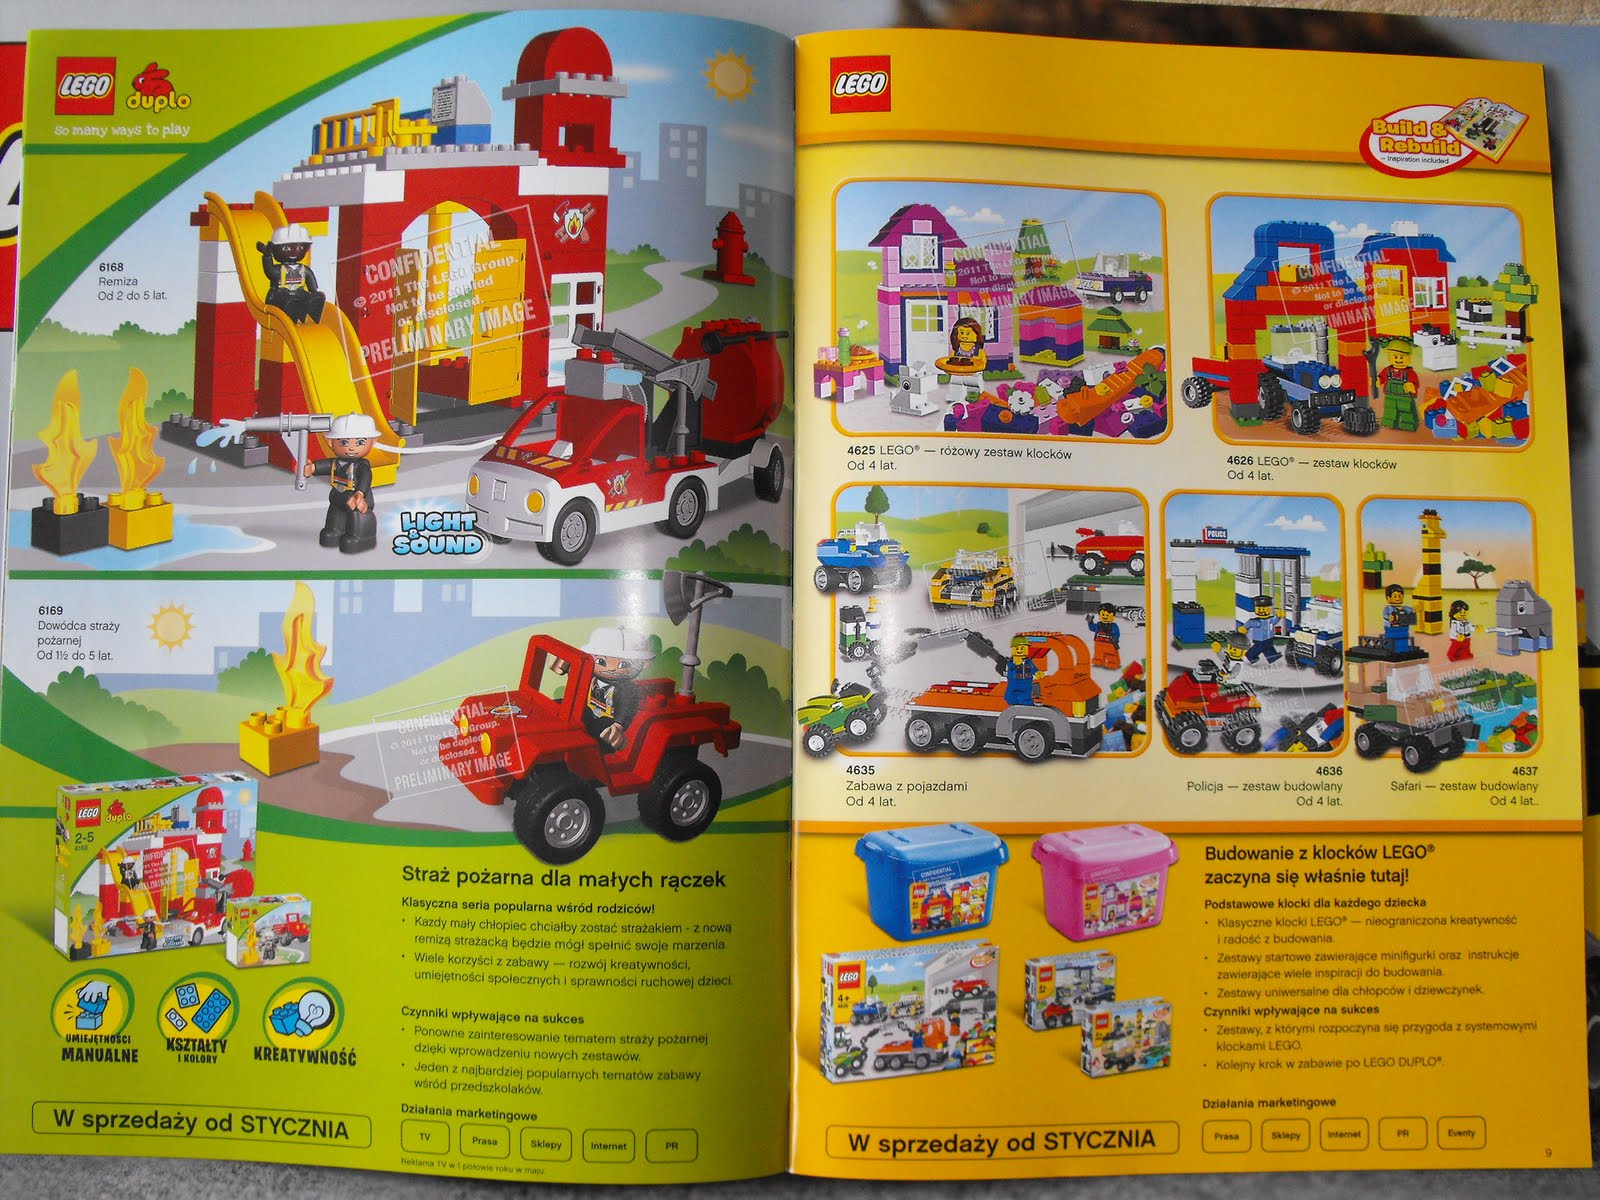 The Brick Brown Fox Lego Duplo And Bricks And More 2012 Sets